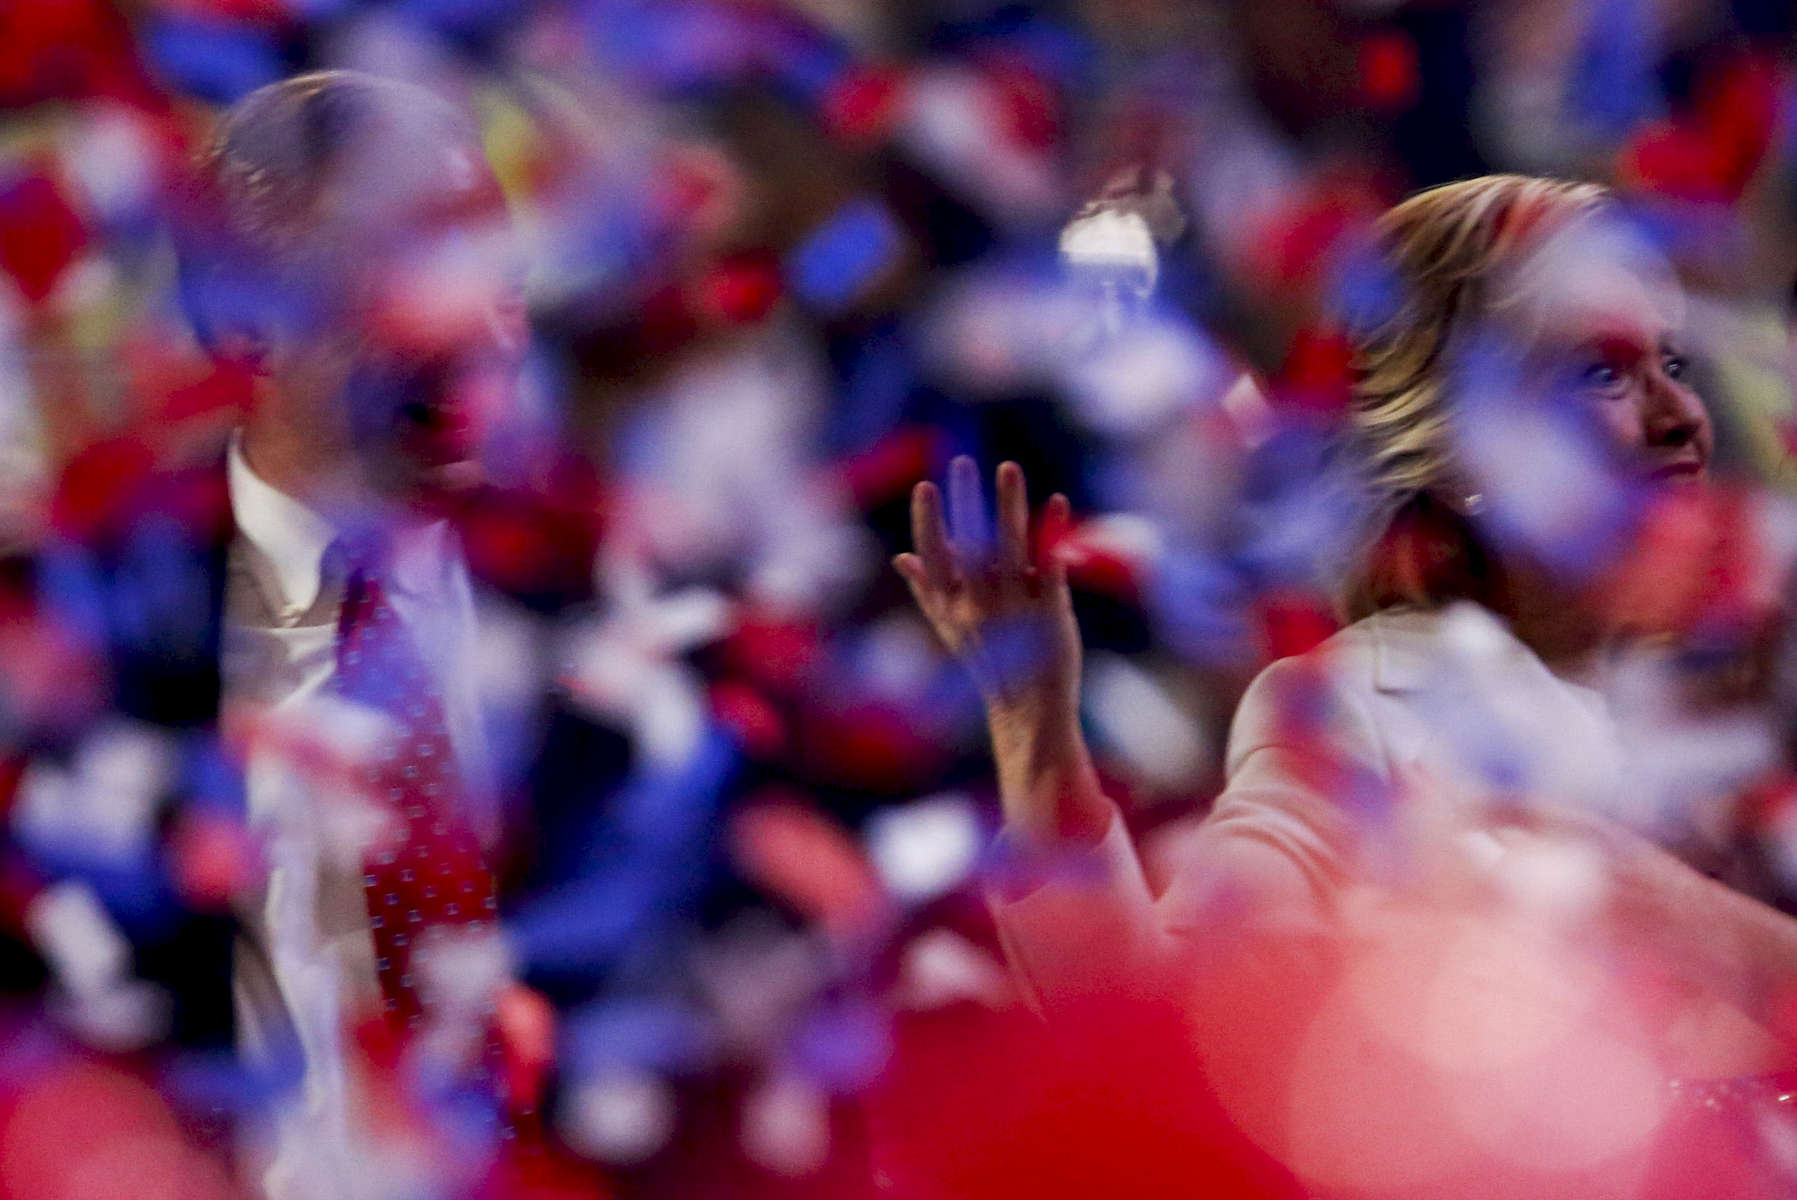 Democratic Presidential nominee Hillary Clinton with Democratic Vice Presidential candidate Tim Kaine wave under the confettis.